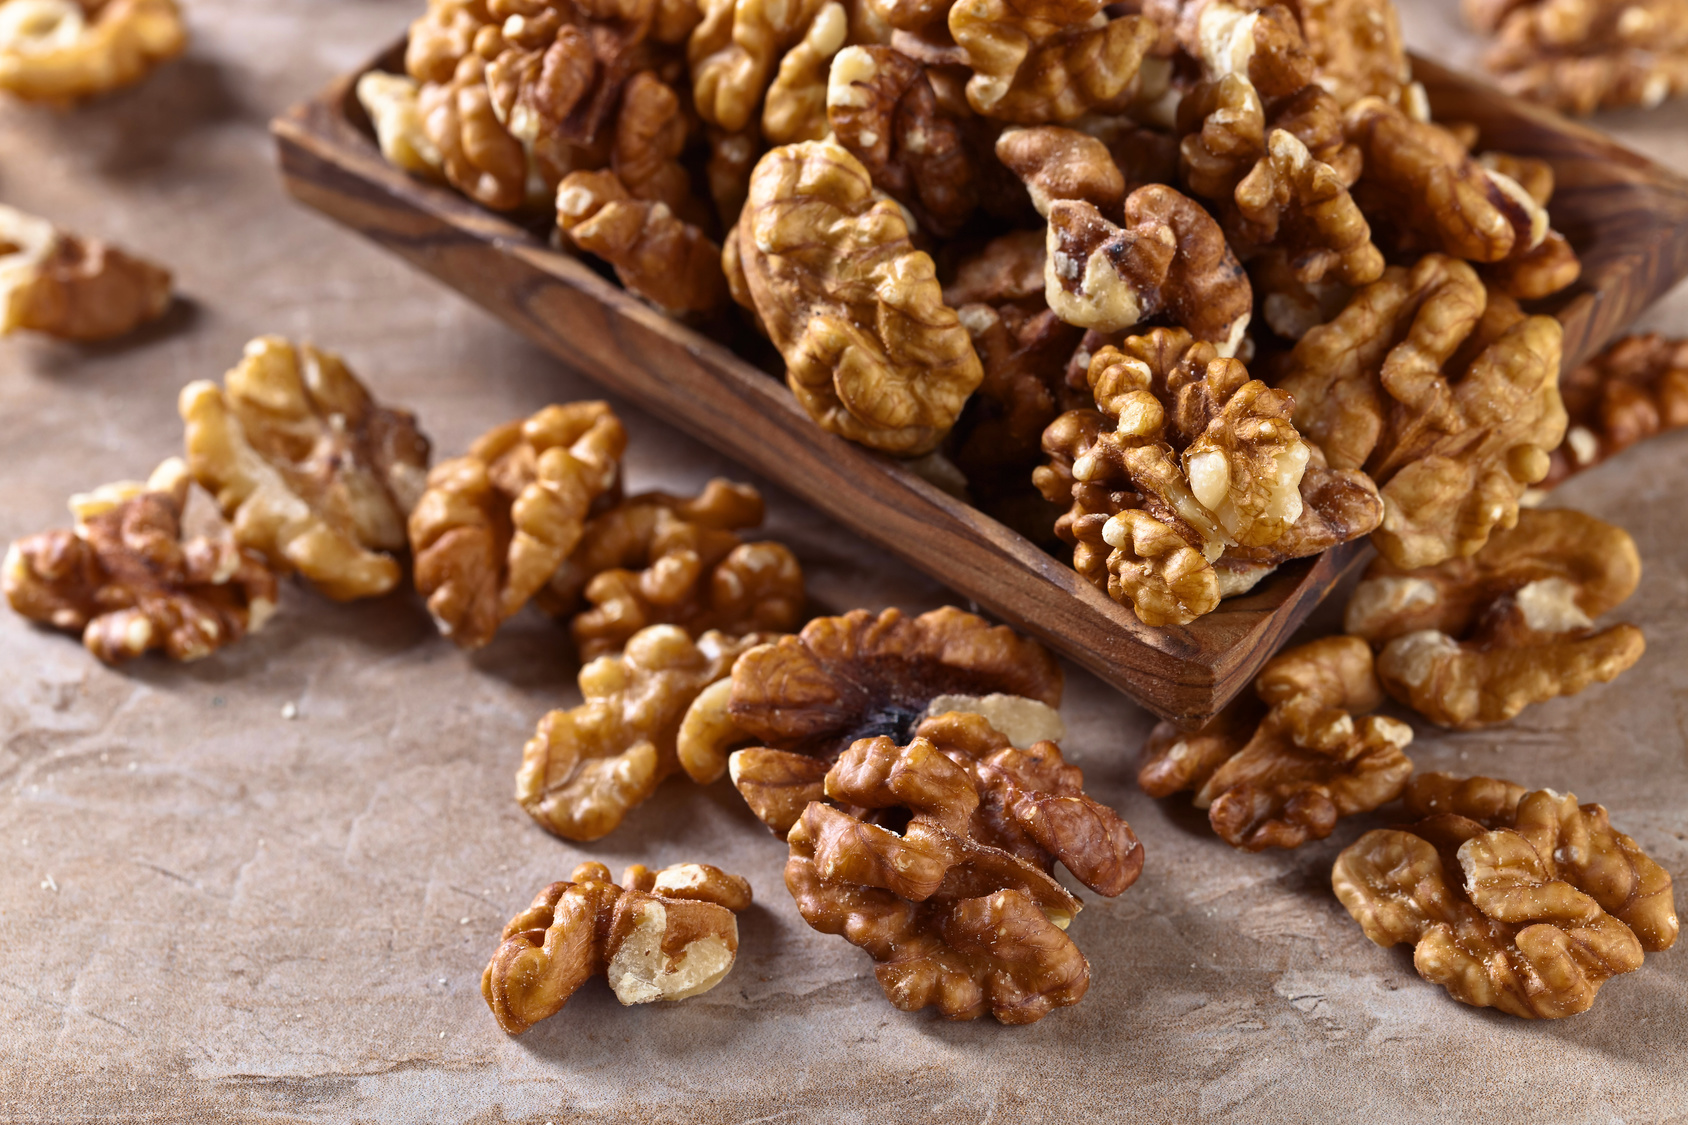 Walnuts in old wooden dish on a kitchen table